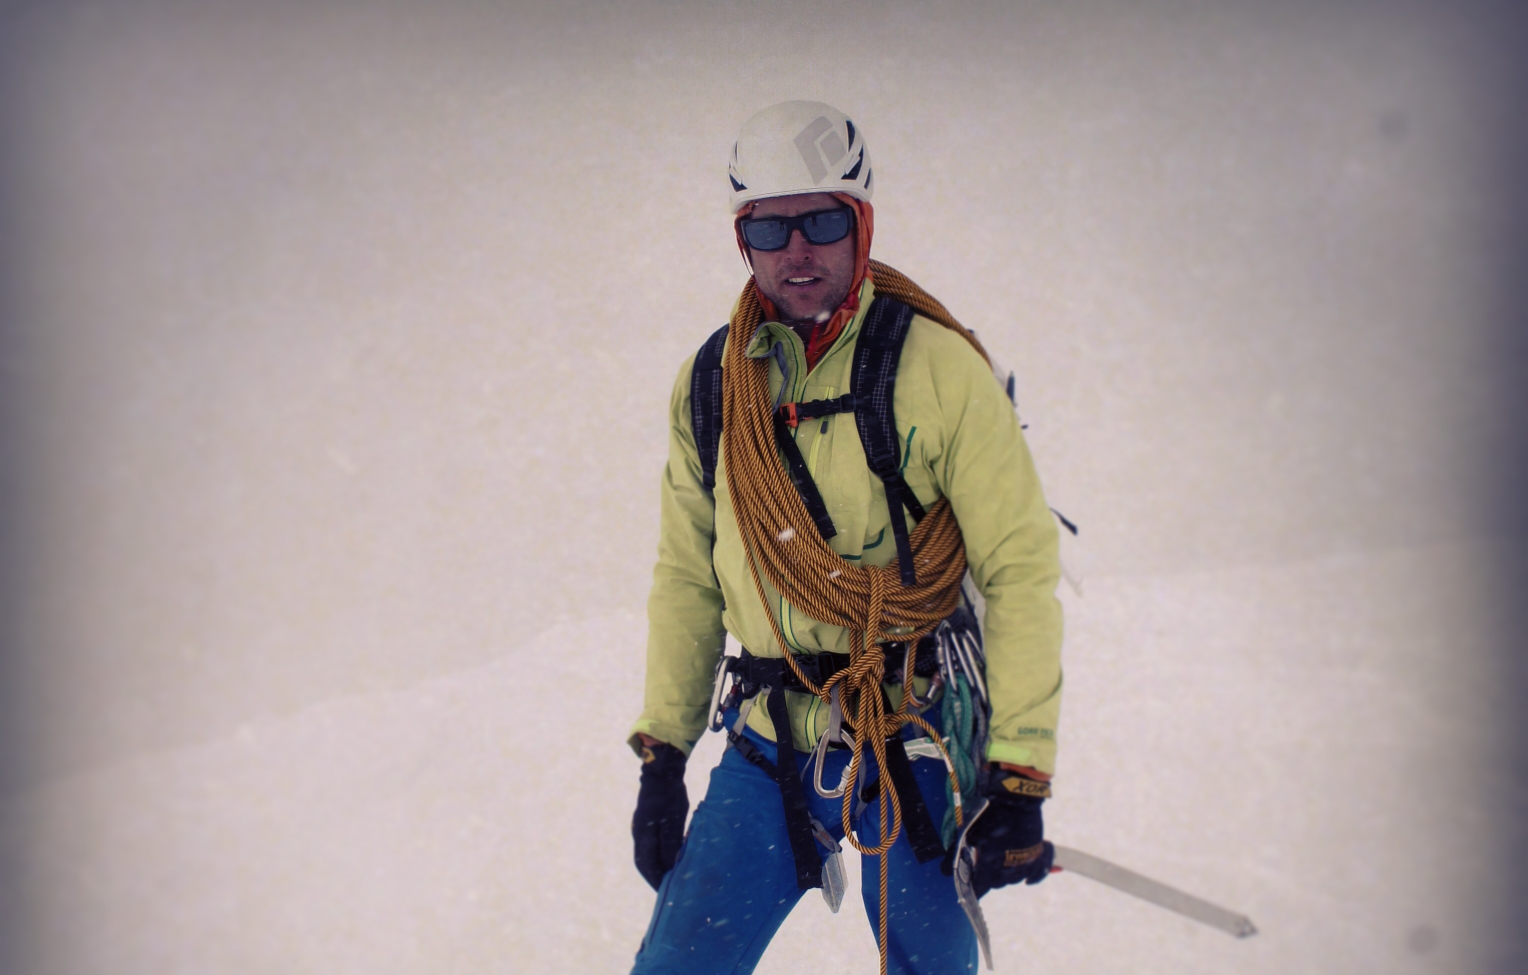 Jed while alpine guiding